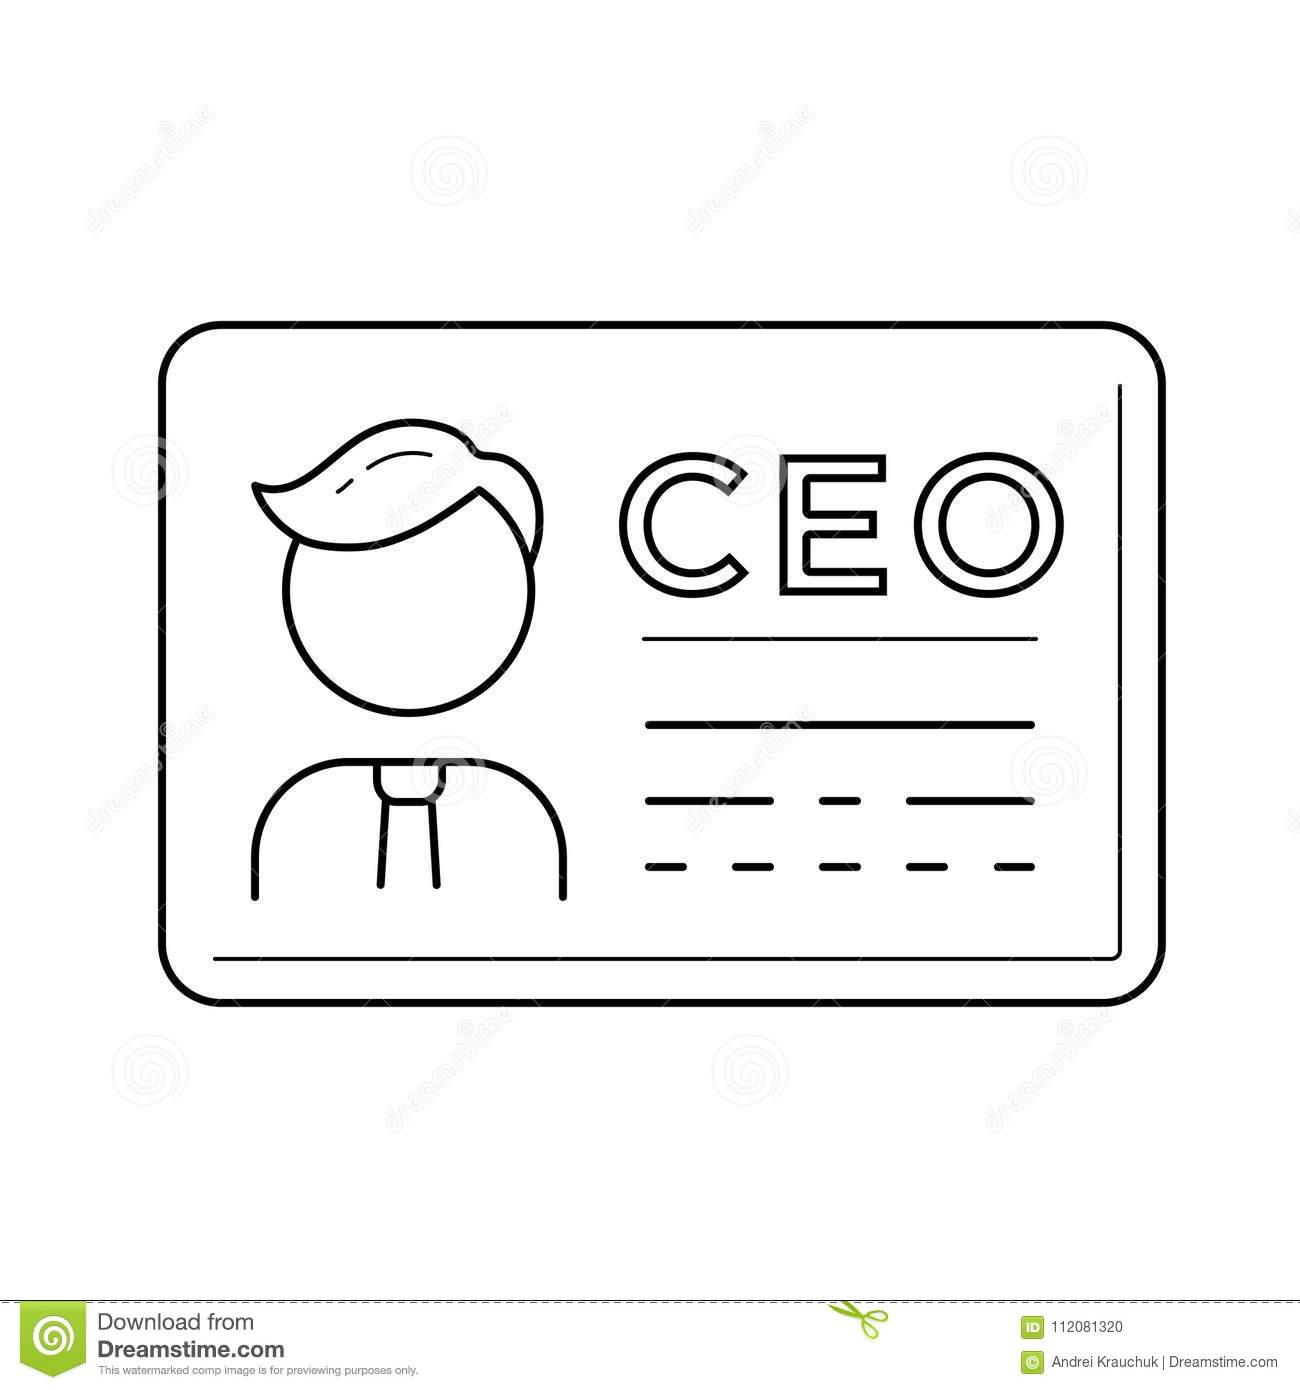 Ceo business card vector line icon stock vector illustration of download ceo business card vector line icon stock vector illustration of draw business colourmoves